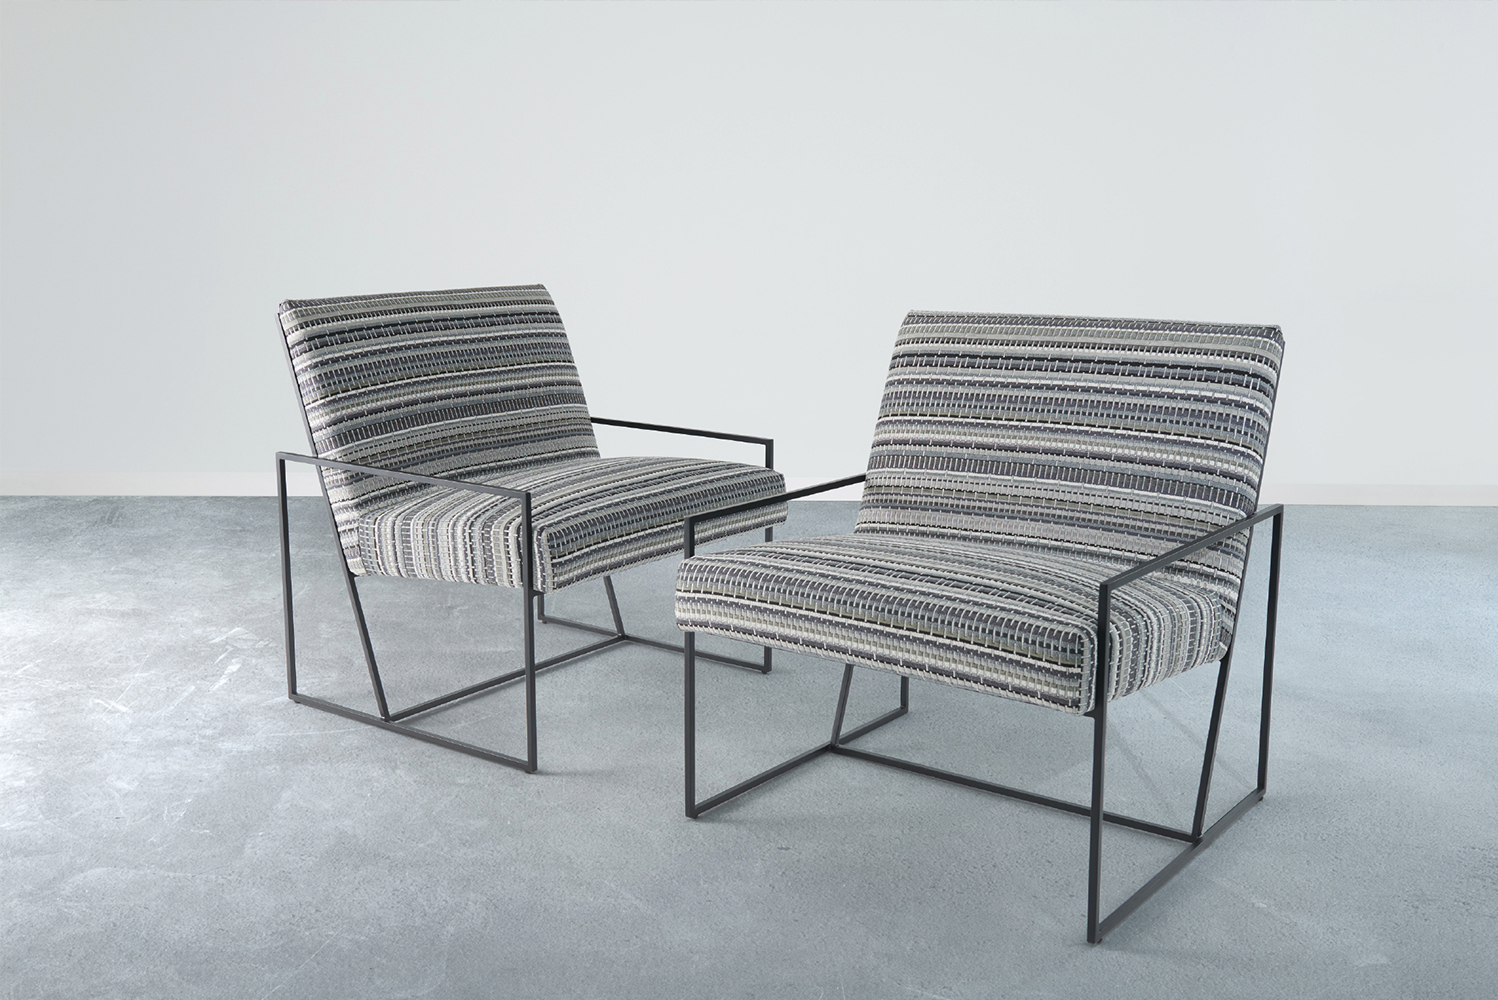 The upholstery collection takes queues from trending finishes/patterns such as metallics, stripes and florals.